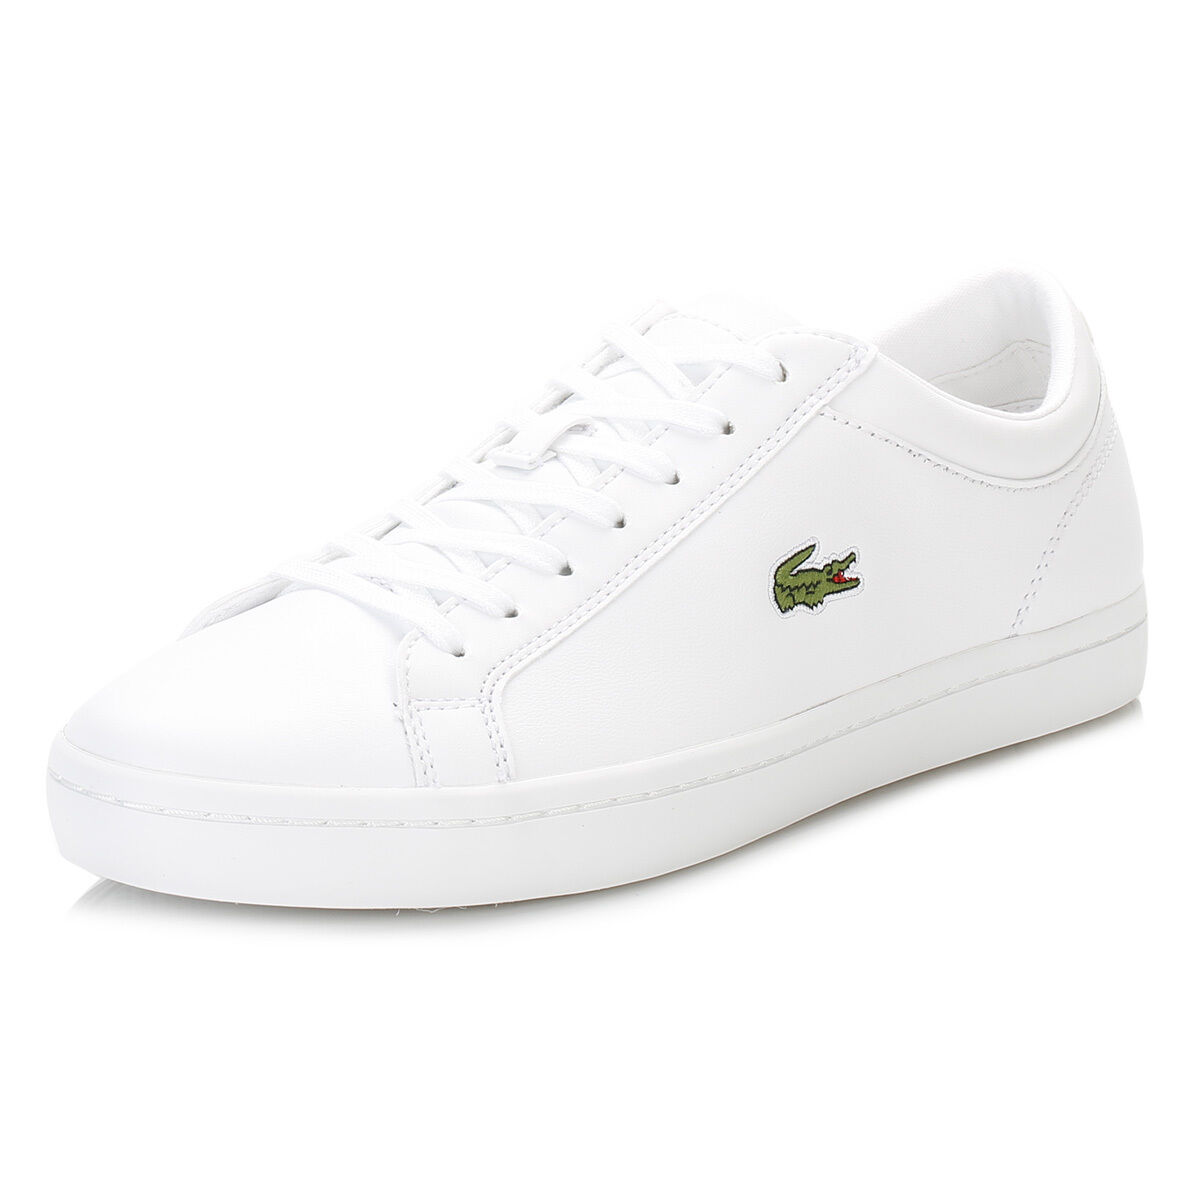 Lacoste Femme Blanc Trainers, Straightset BL1 SPW, Lace Up, Casual Sneaker Chaussures